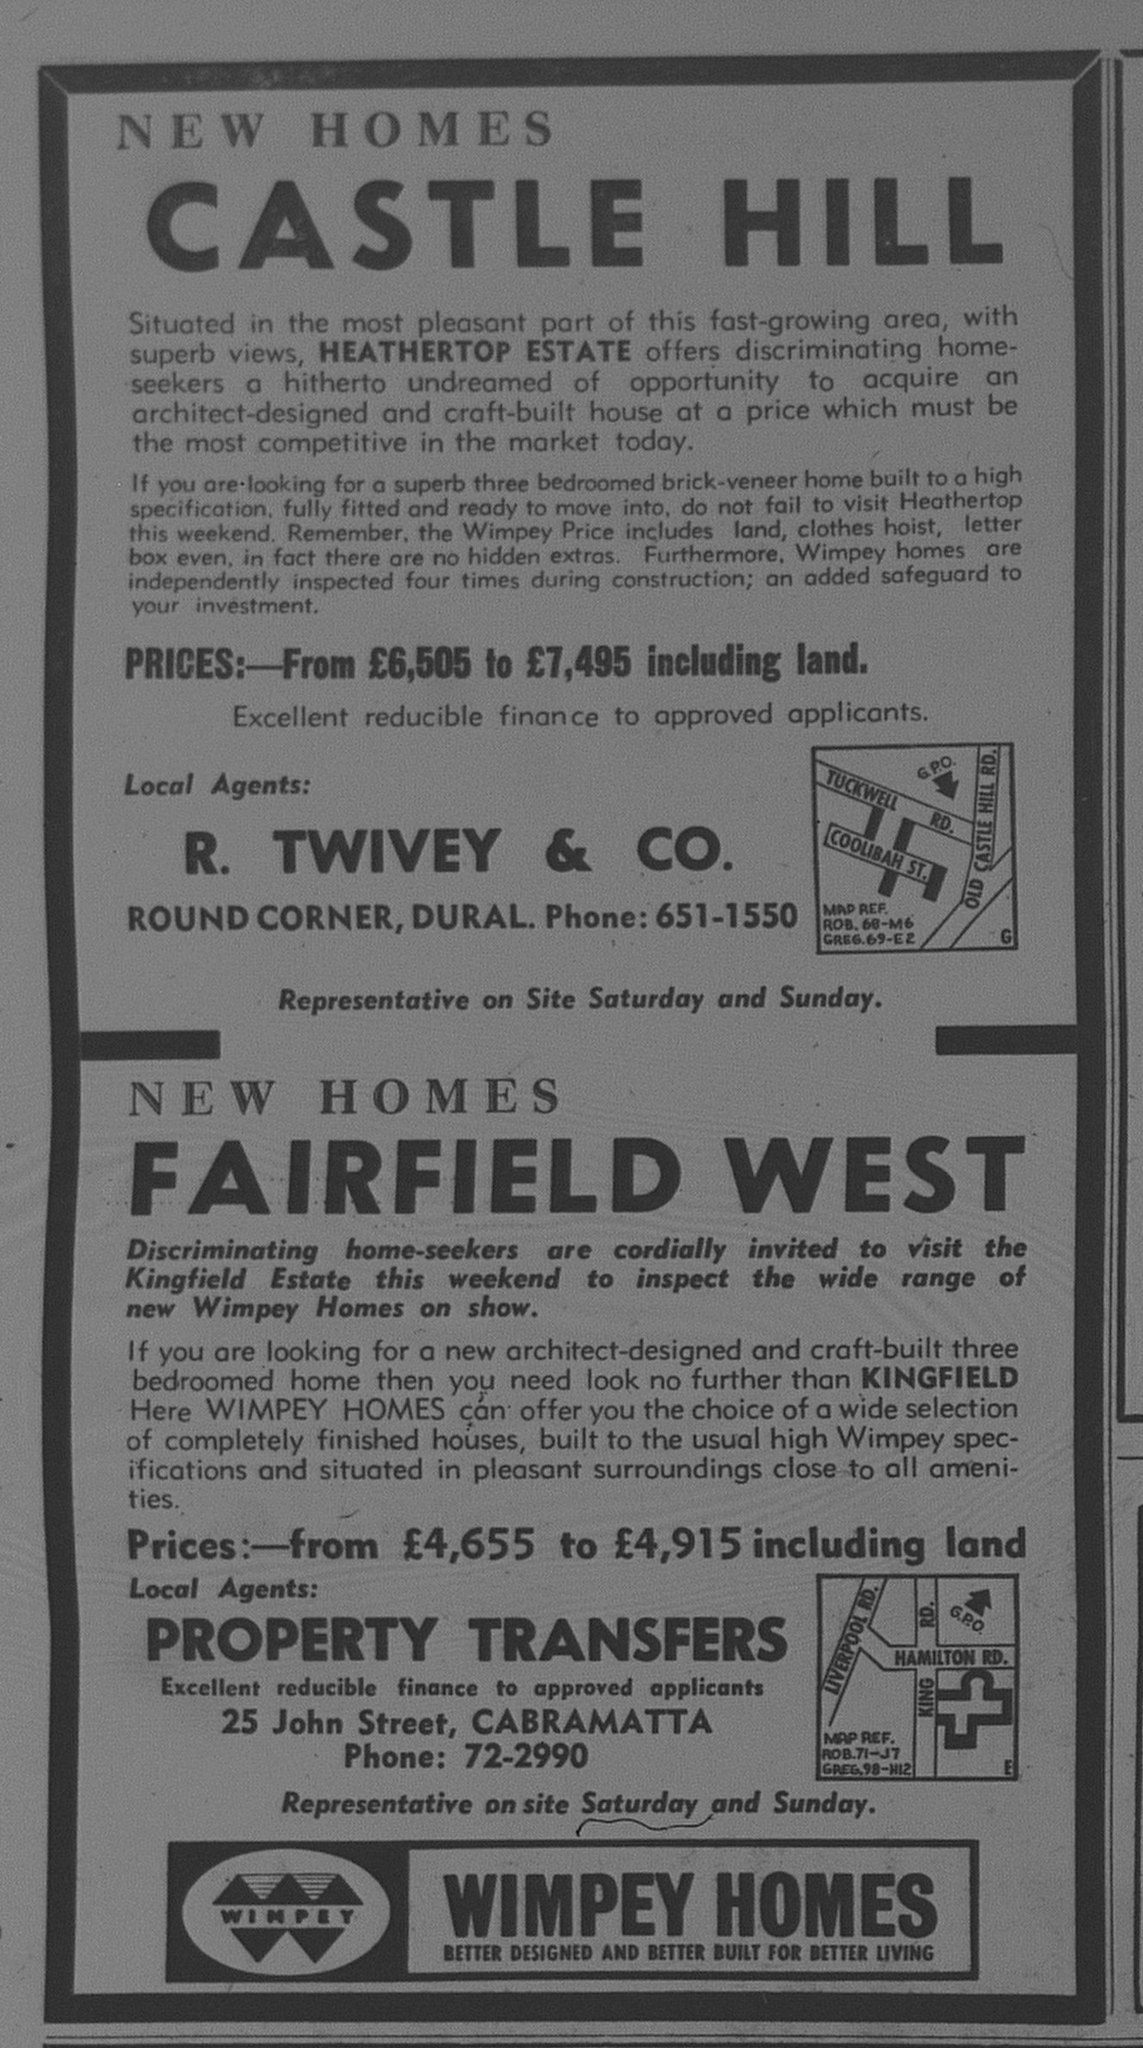 Wimpey Homes Ad October 21 1966 the sun 64